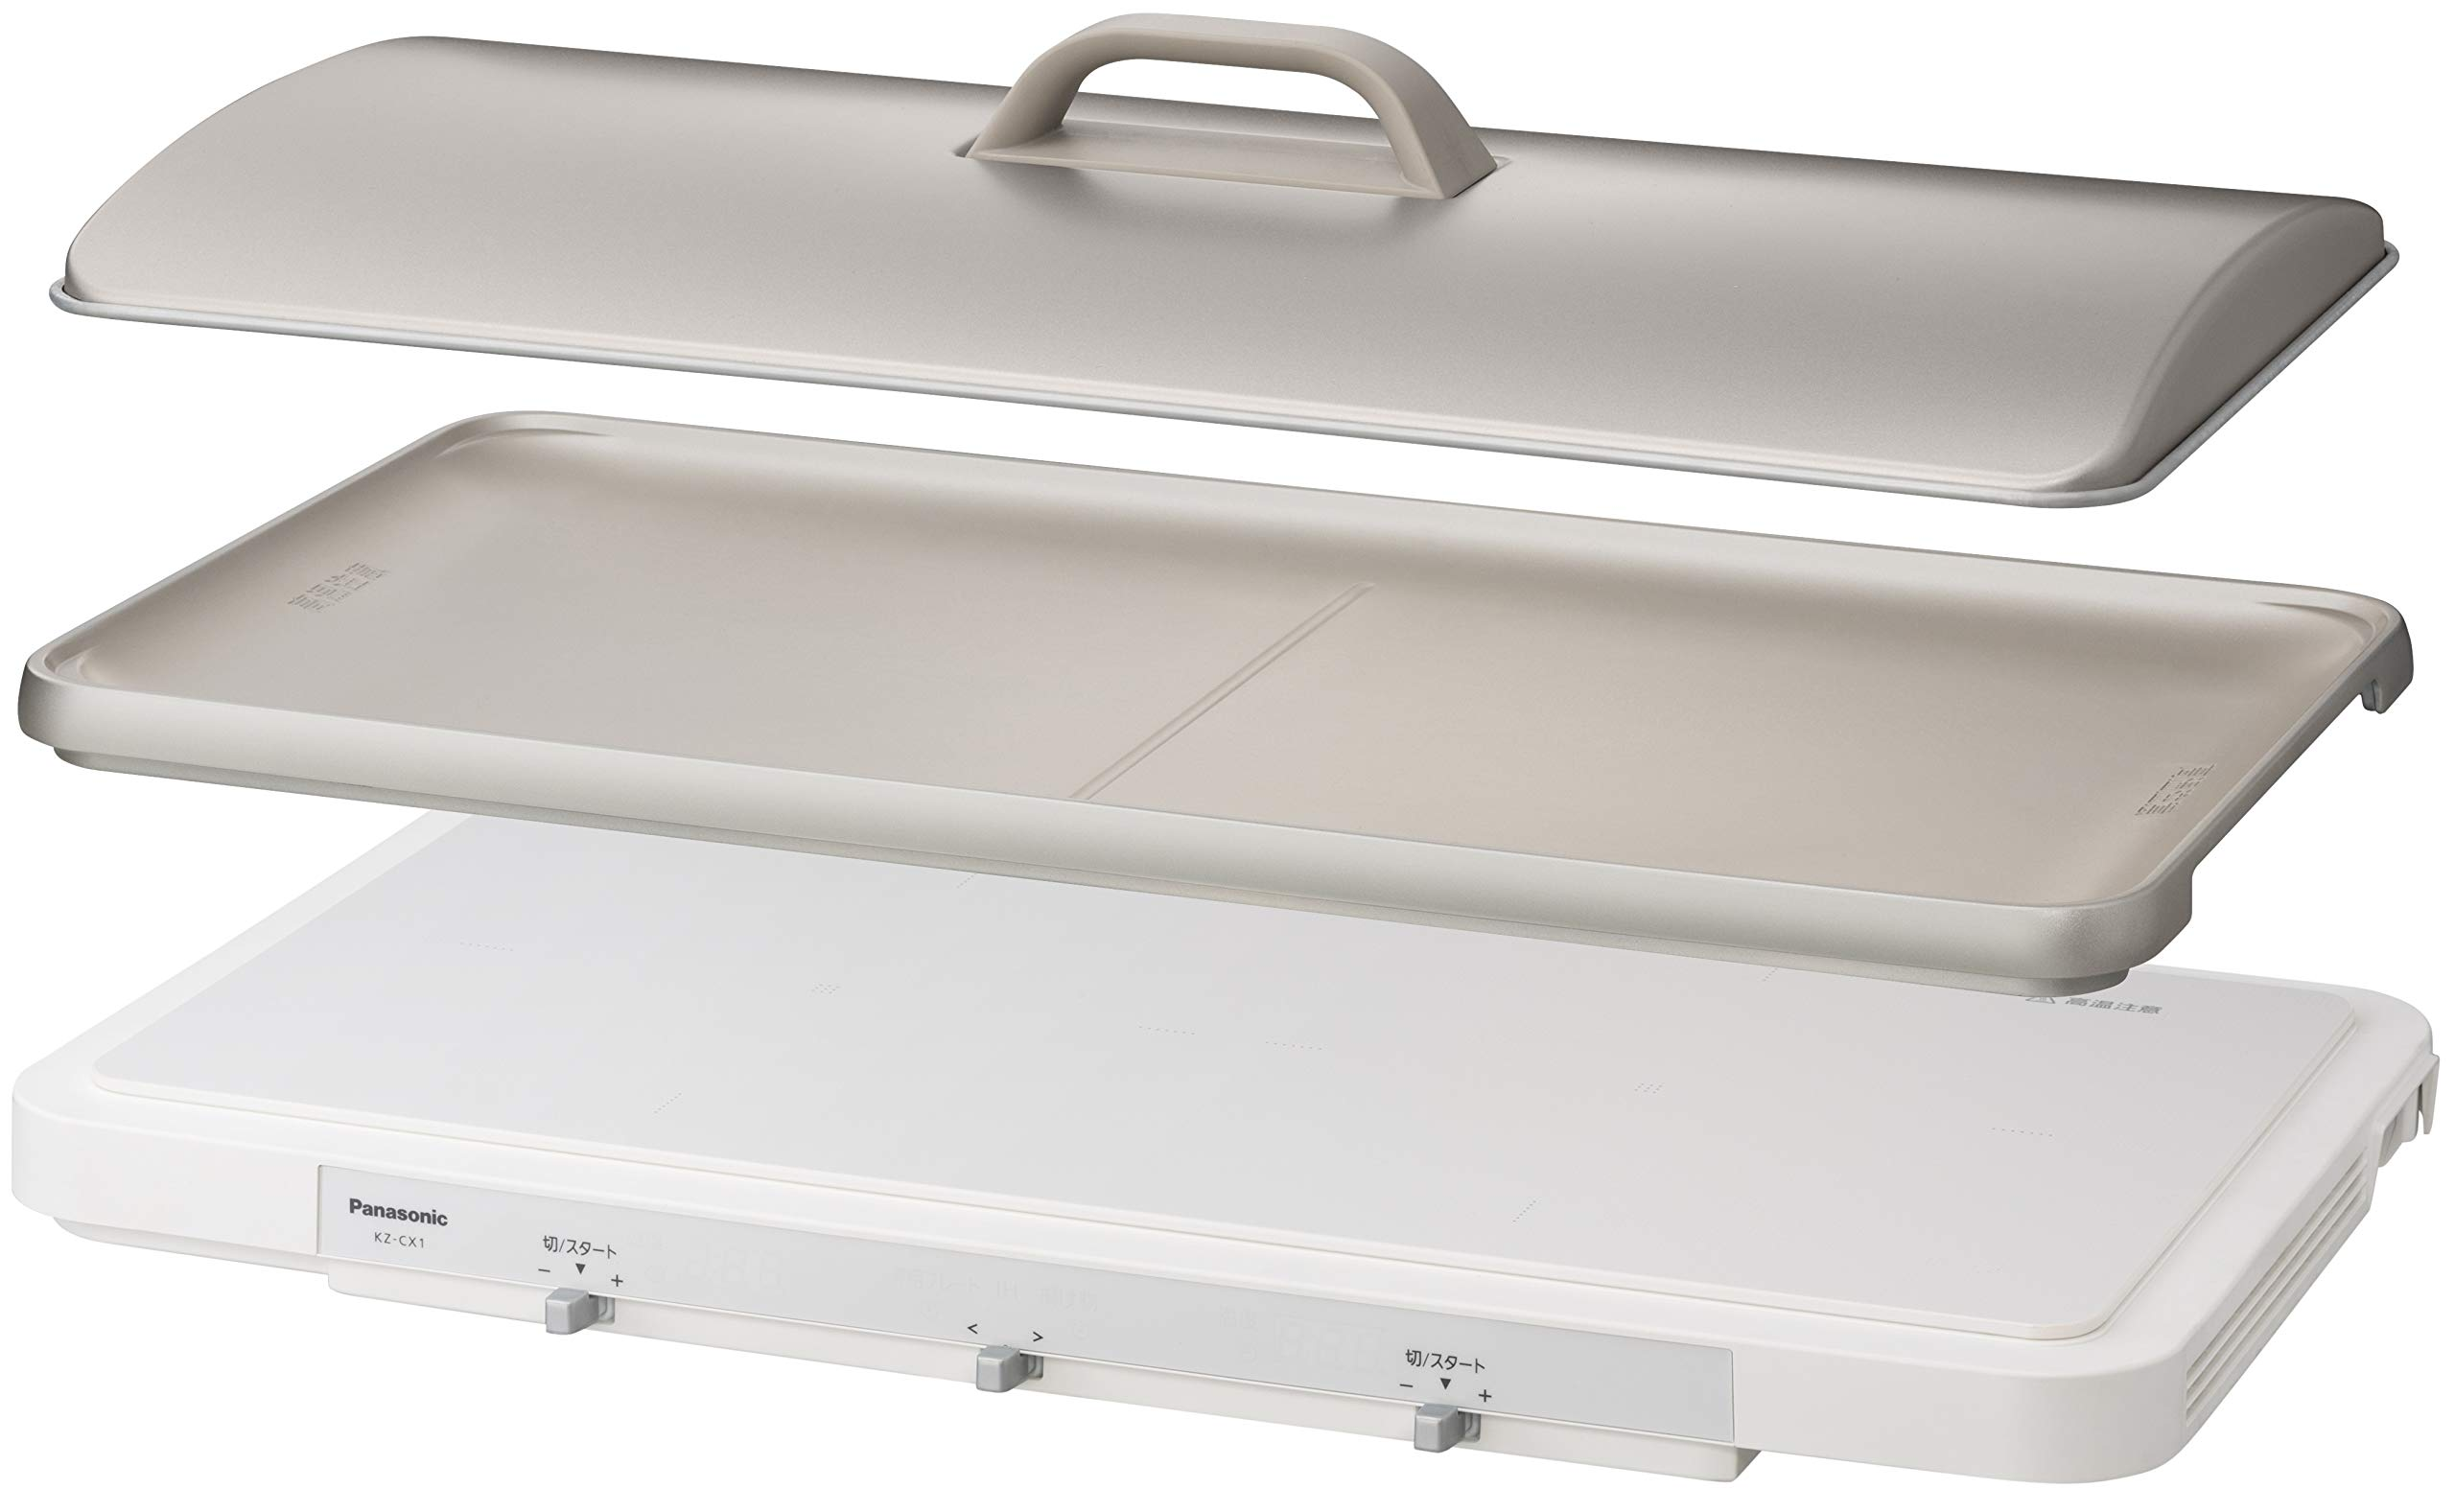 Panasonic IH Daily Hot Plate KZ-CX1-W (WHITE)【Japan Domestic Genuine Products】【Ships from Japan】 by Panasonic (Image #1)